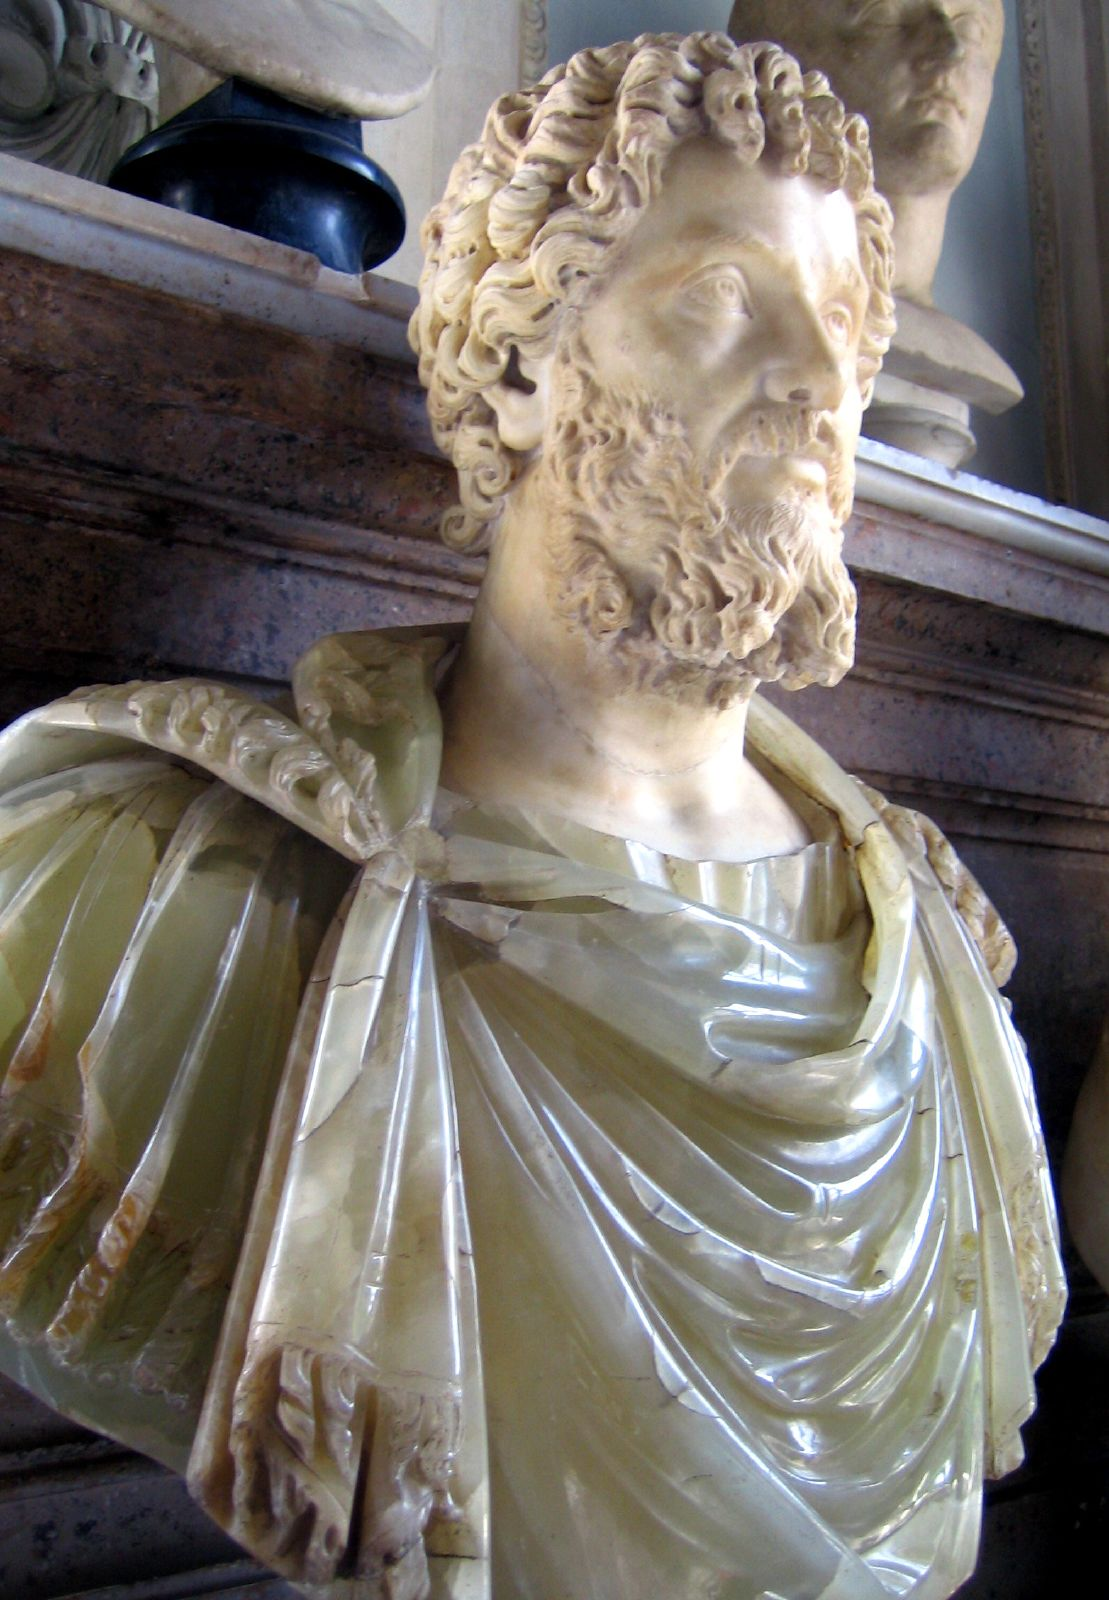 Born in the Phoenician Punic city of Leptis Magna (modern-day Libya) in 145, Septimius Severus is regarded as the first African ruler of Rome.